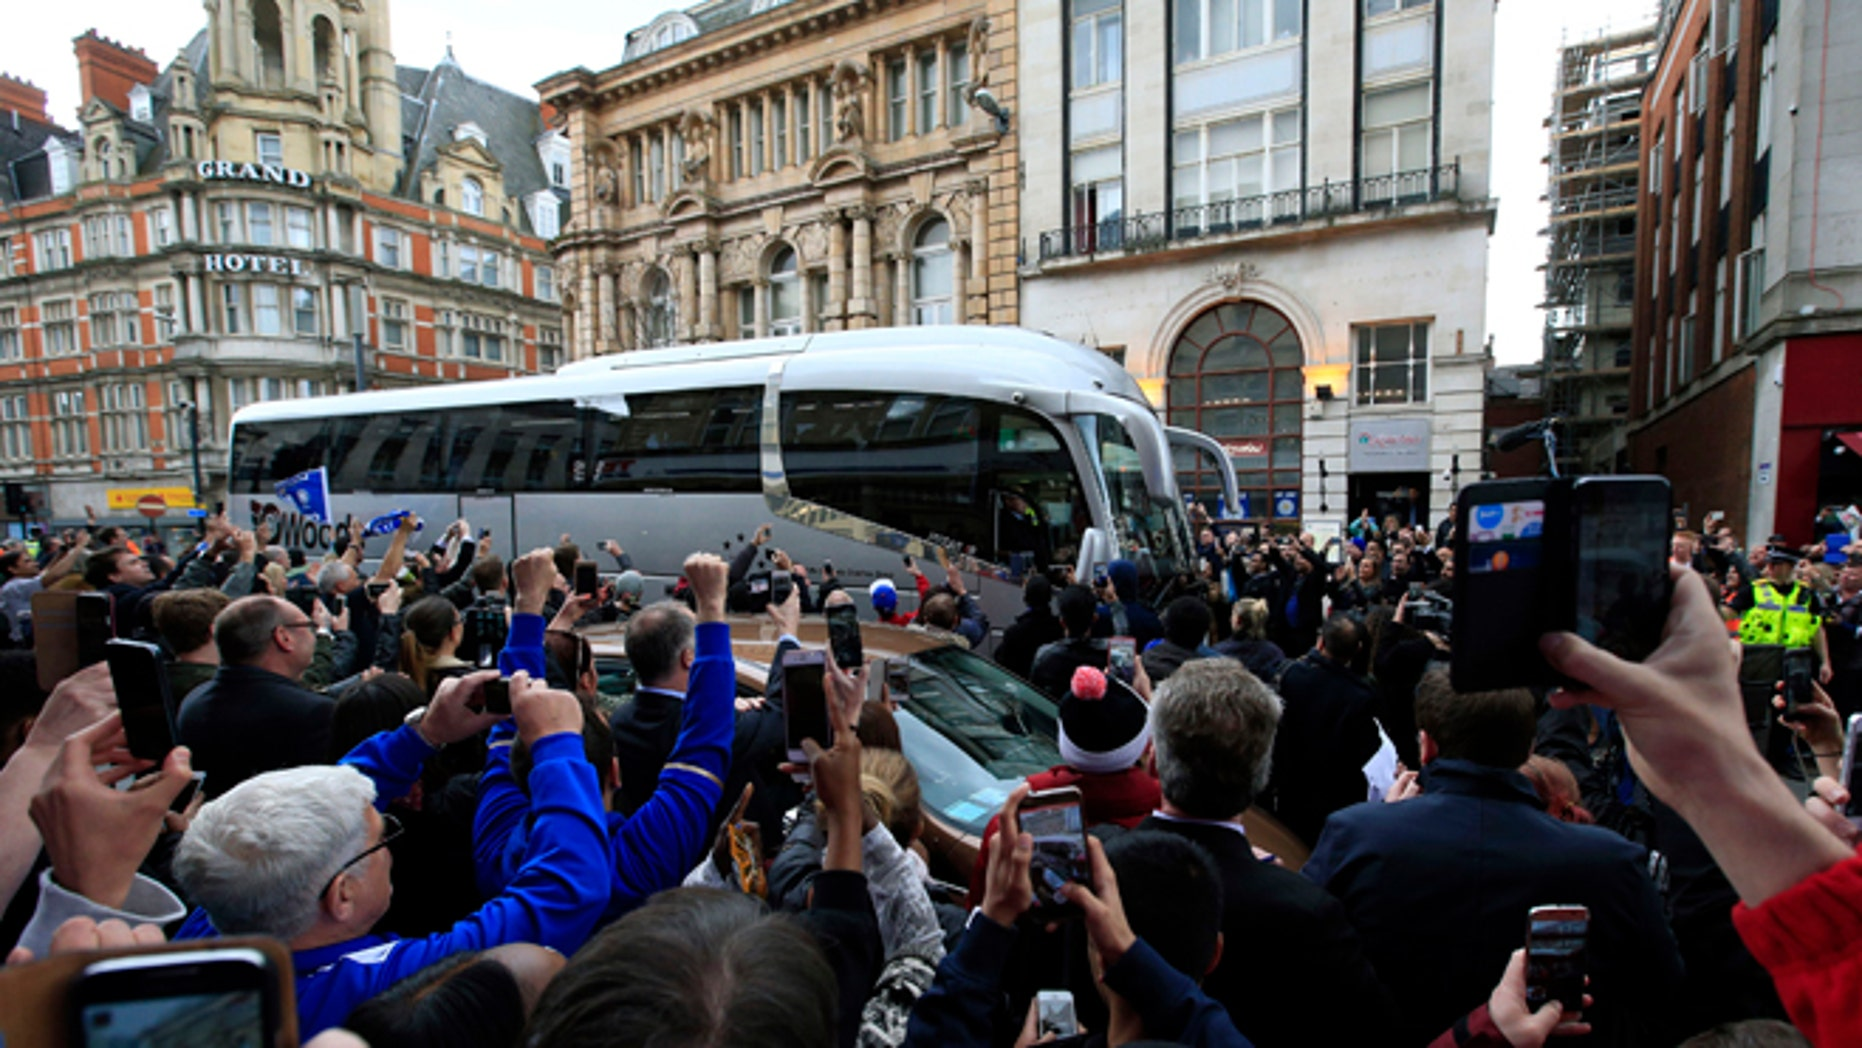 Crowds congregate as the Leicester City team bus arrives  at San Carlo Pizzeria for a celebratory lunch in Leicester, England Tuesday May 3, 2016. Leicester  clinched the most improbable title of the Premier League era when second-place Tottenham was held to a 2-2 draw at Chelsea on Monday night.  (Jonathan Brady/PA via AP)  UNITED KINGDOM OUT  NO SALES NO ARCHIVE